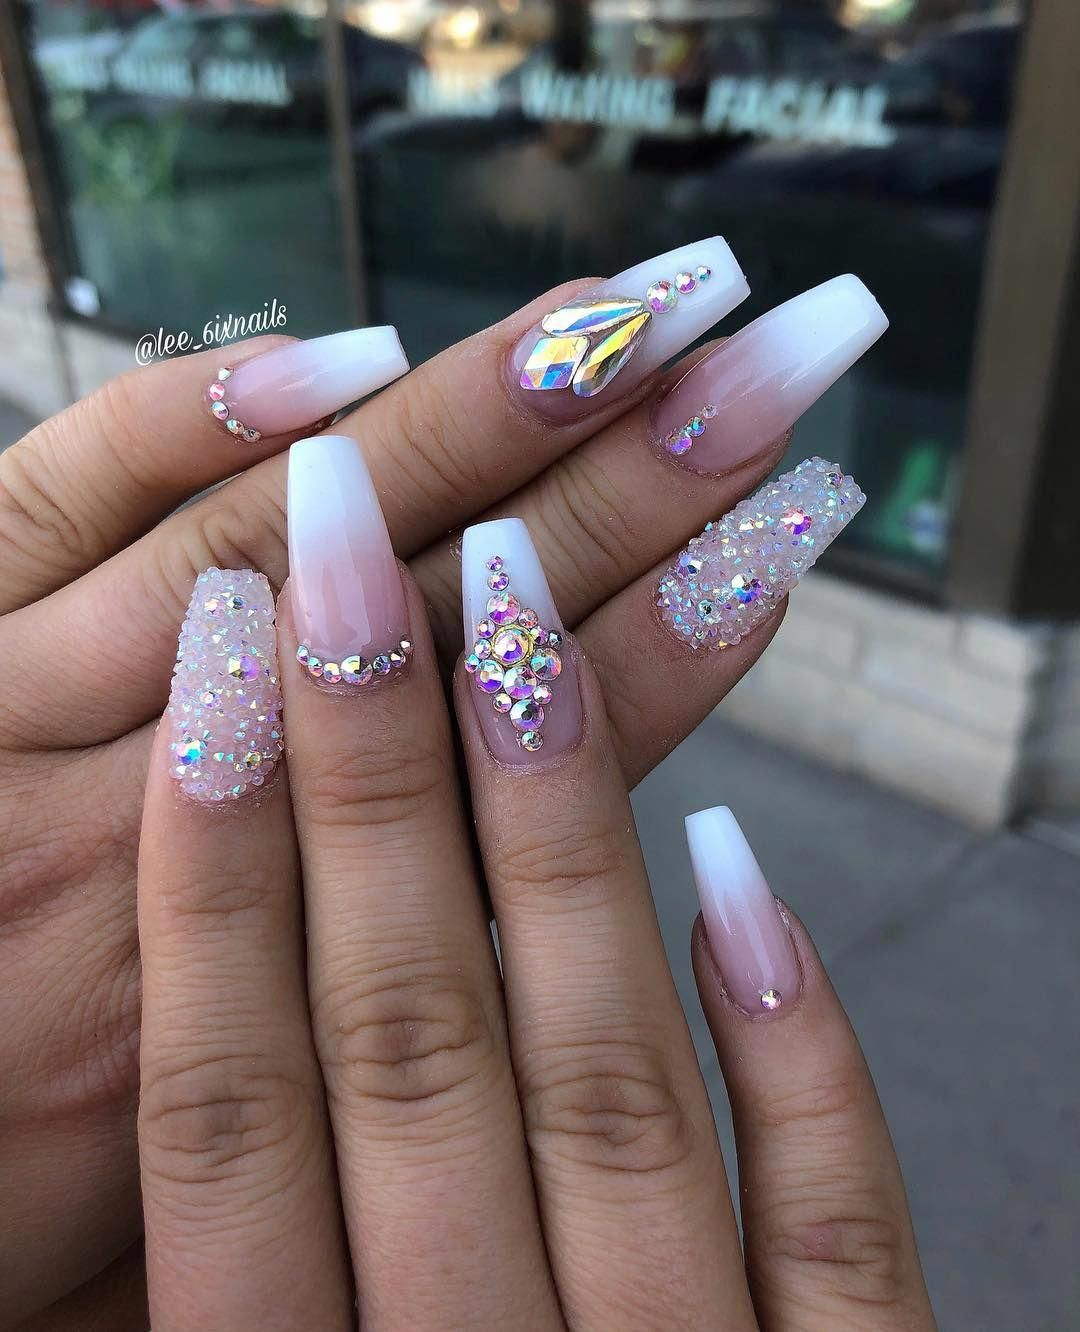 Pin by SHiio GaRciia on nails   Nails design with